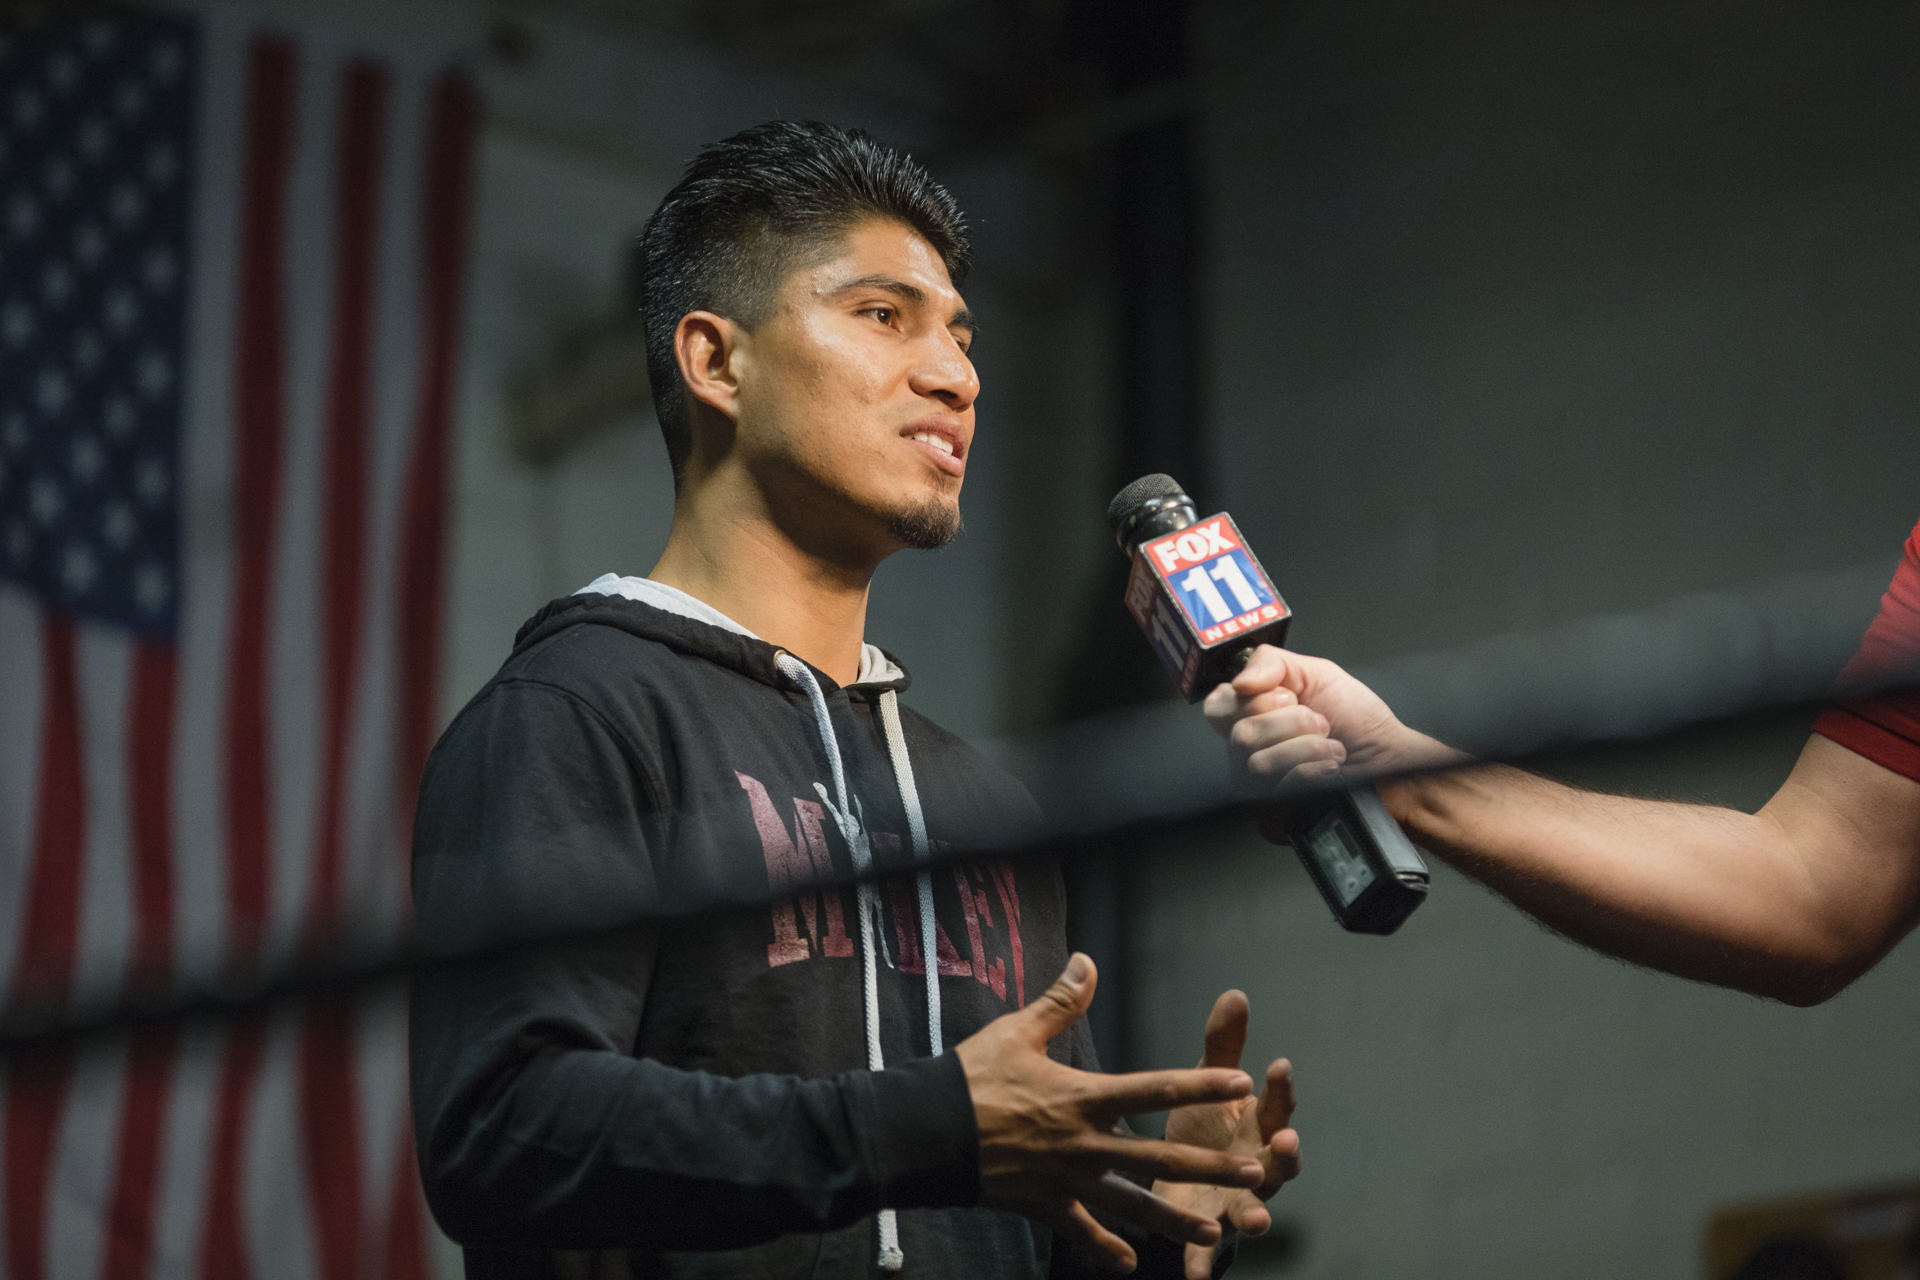 THREEdivision world champion Mikey Garcia kept his undefeated record intact with a dominant 12round performance against fourdivision world champion